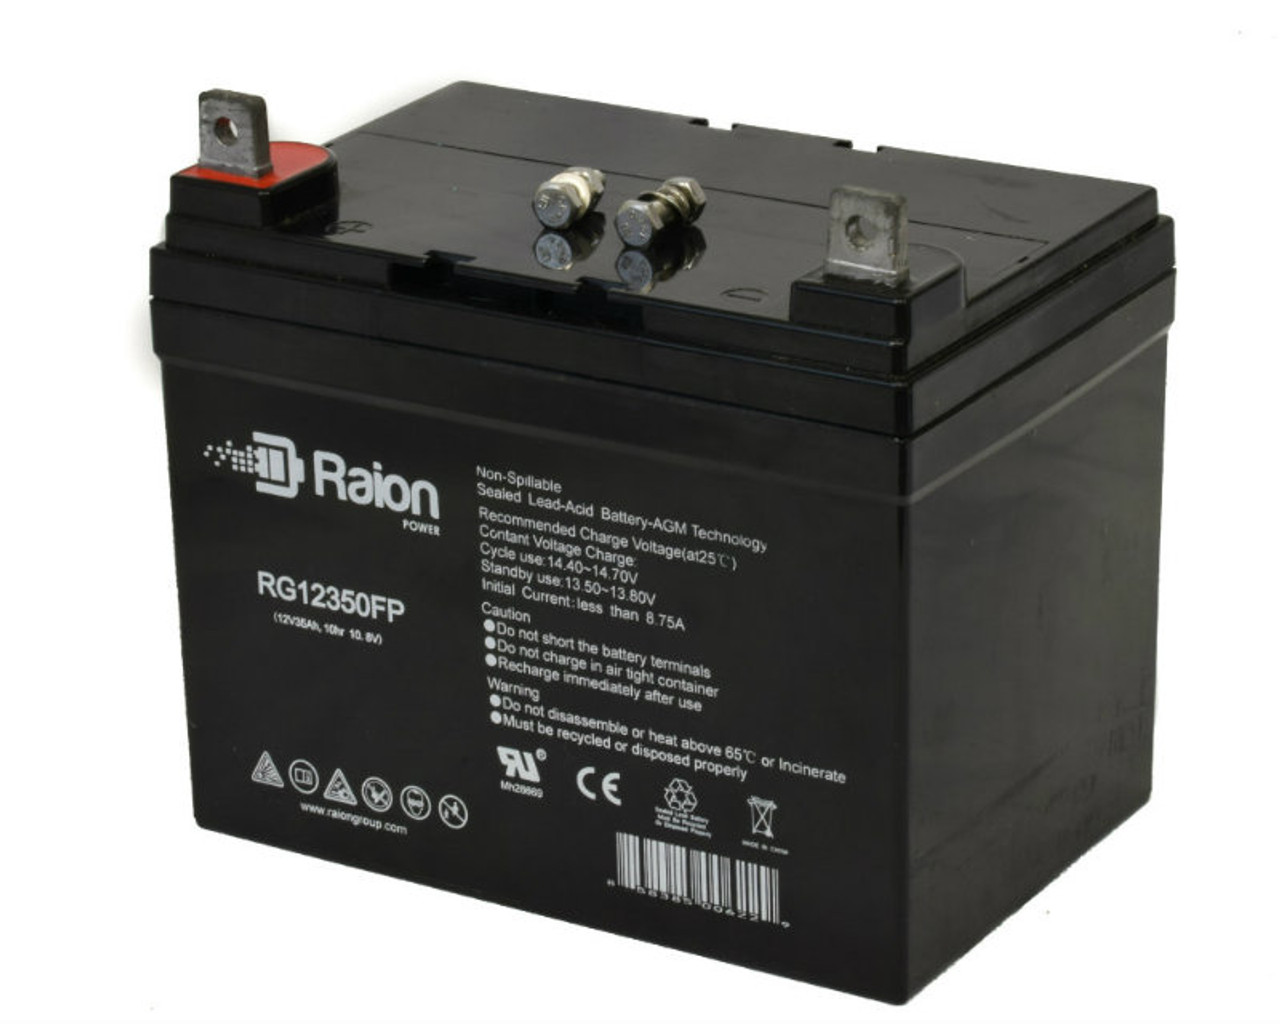 RG12350FP Sealed Lead Acid Battery Pack For Electric Mobility Rascal 265LE Candy Apple Mobility Scooter